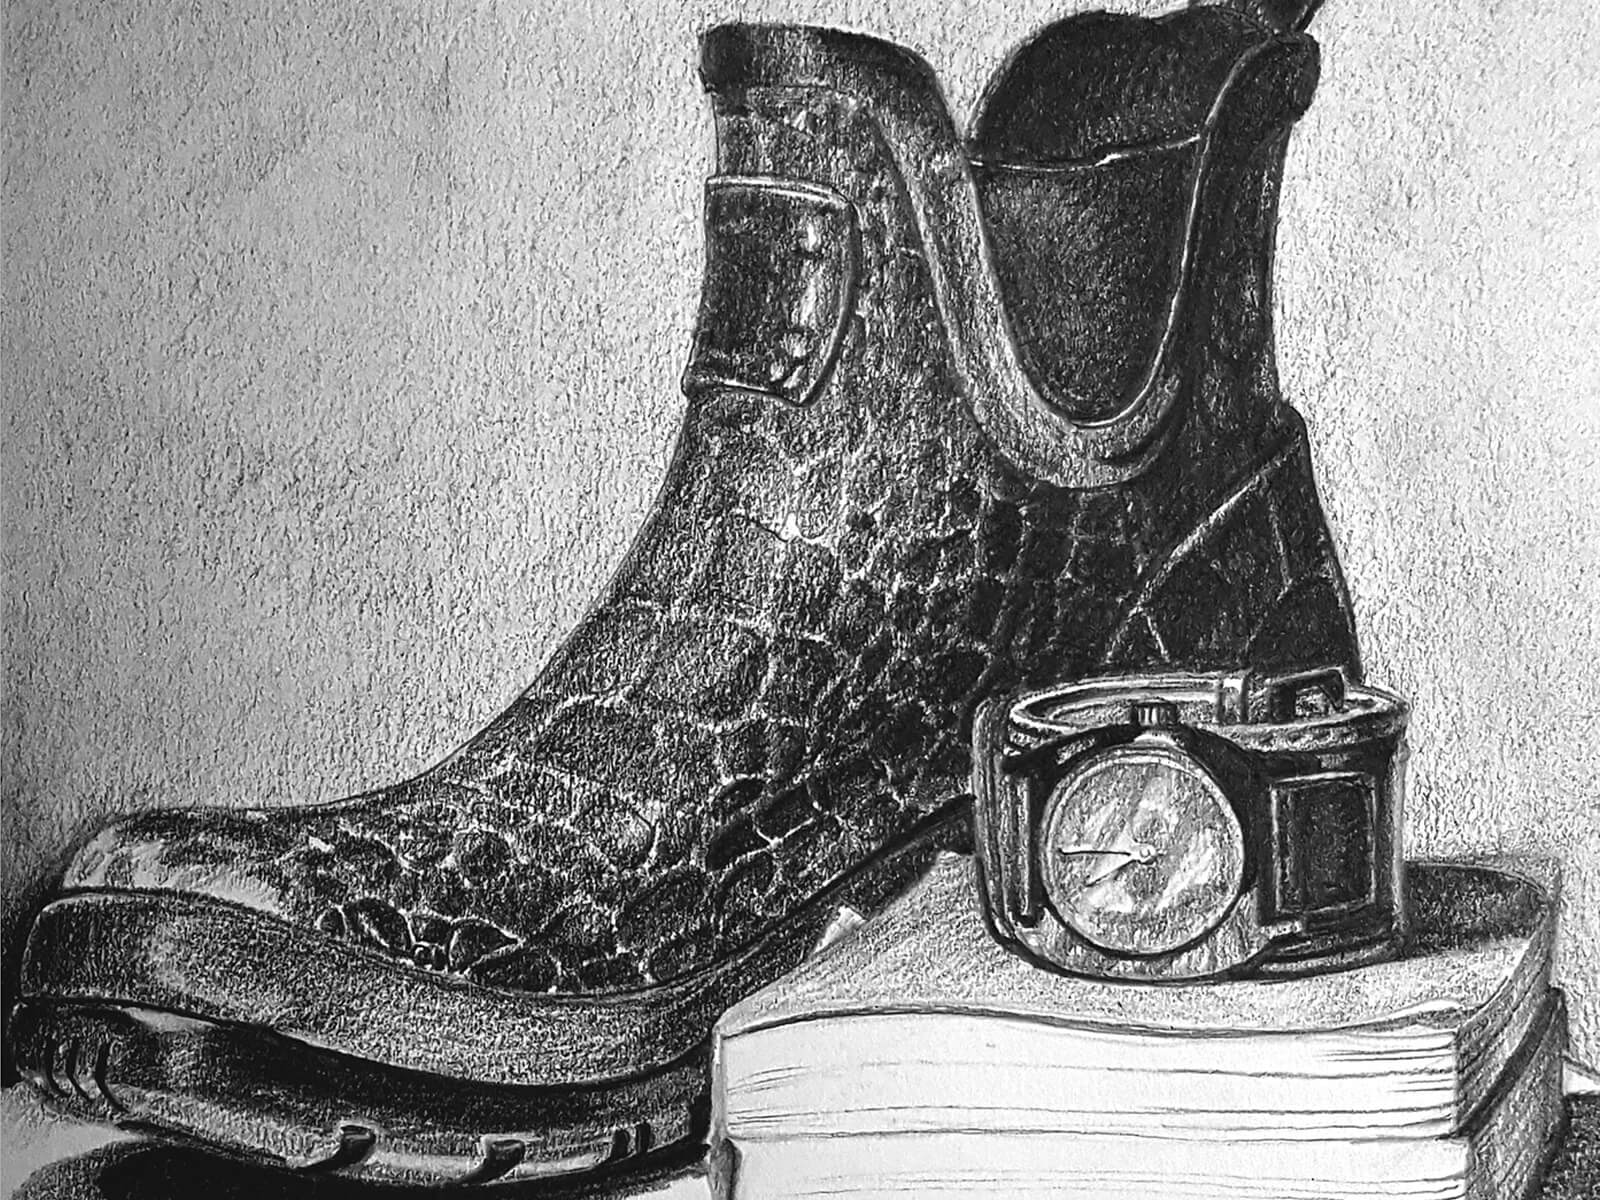 still-life drawing of a boot, wrist watch, and book